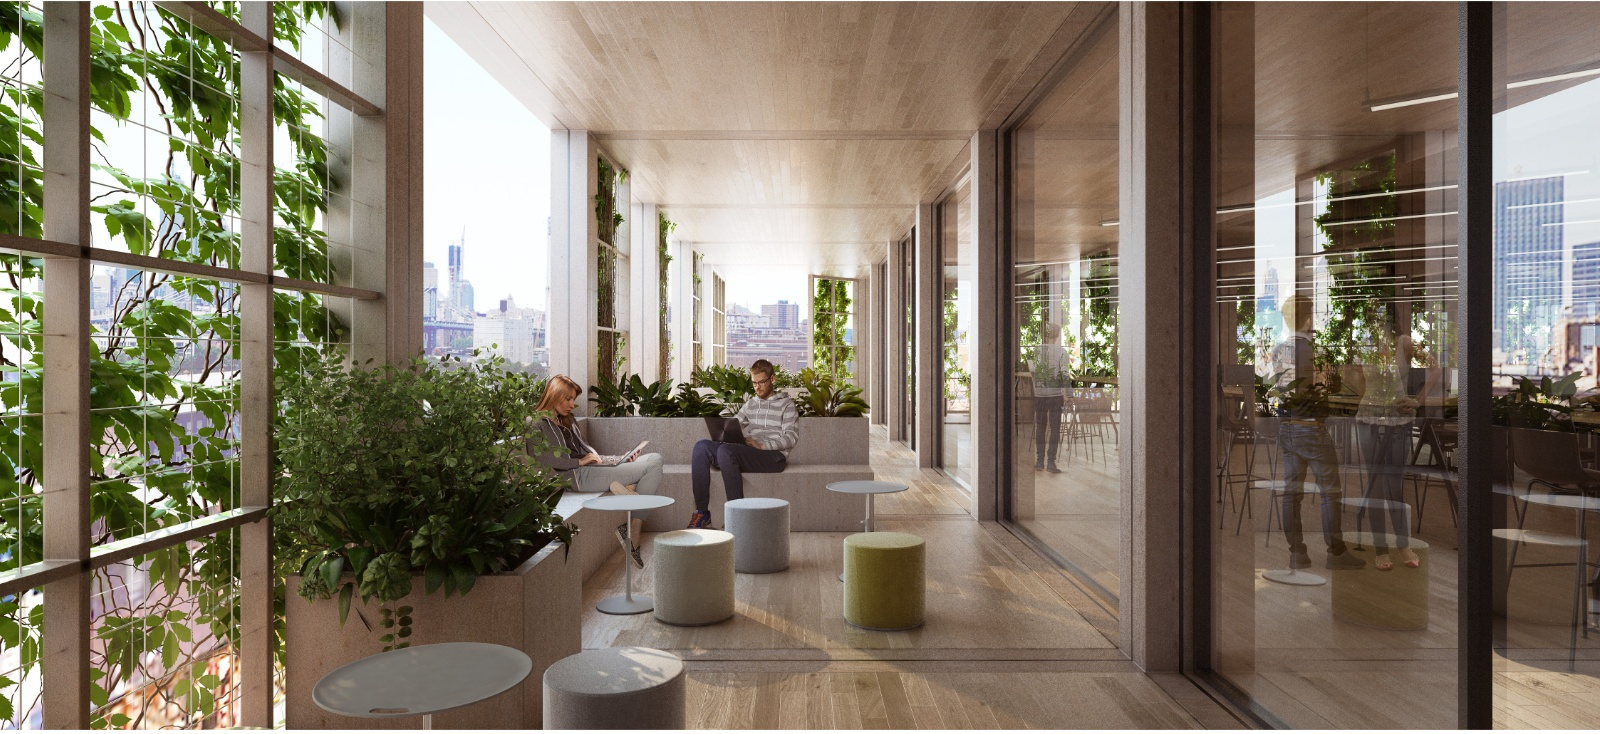 green office design. Posted On Thu, April 5, 2018 By Michelle Colman In Architecture, Green Design, Technology Office Design E